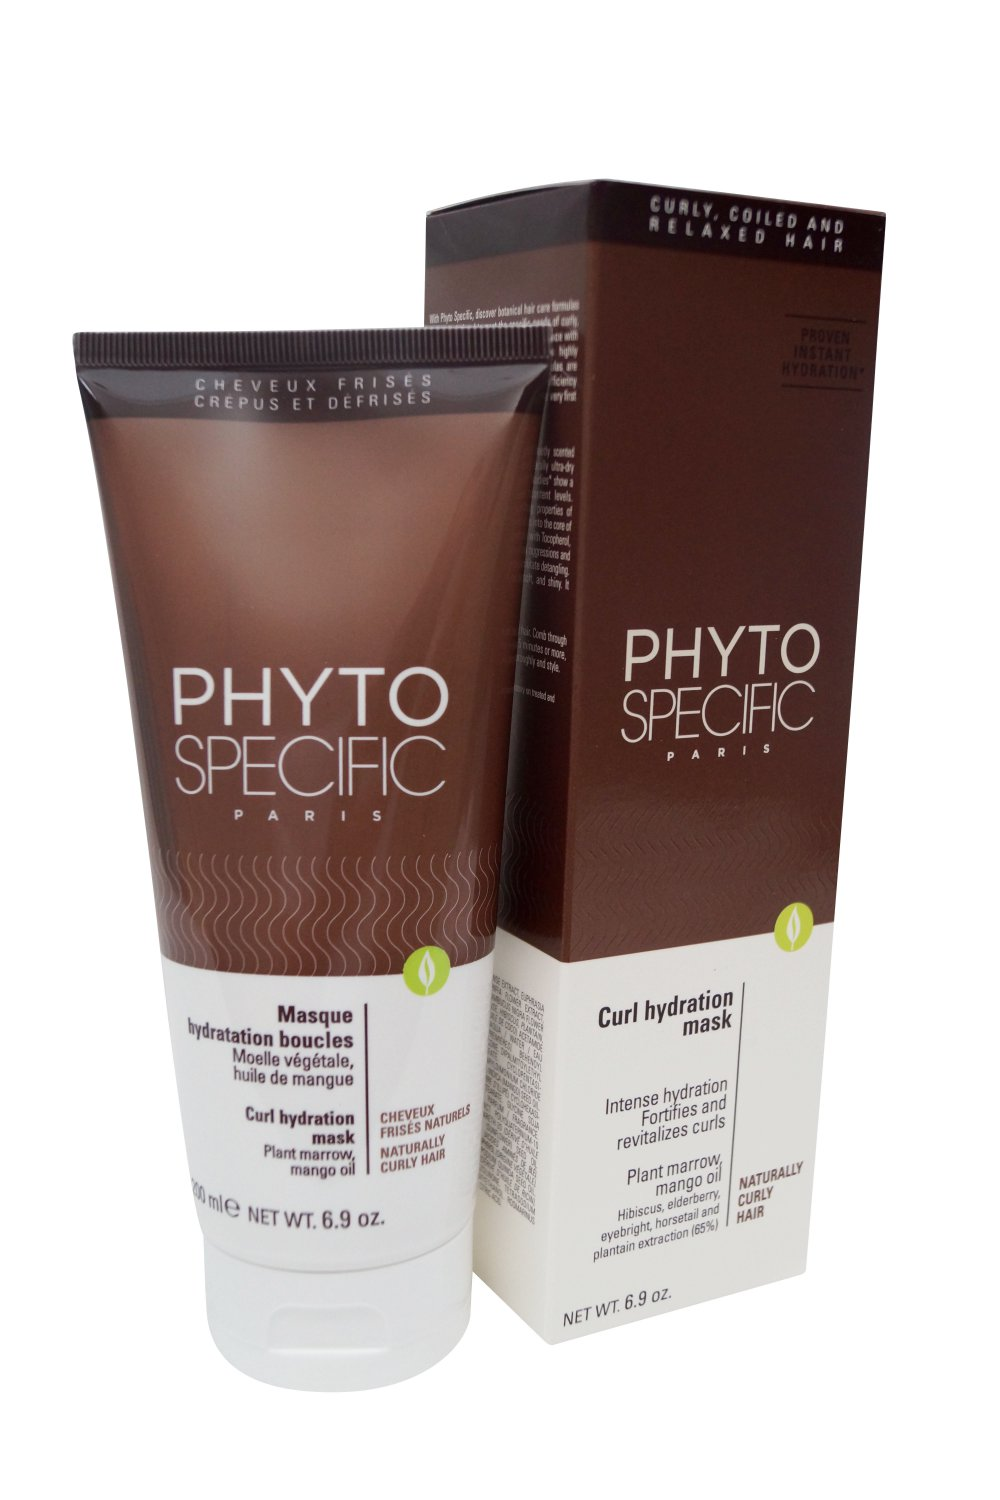 Phyto Specific Curl Hydration Mask, 6.9 oz.